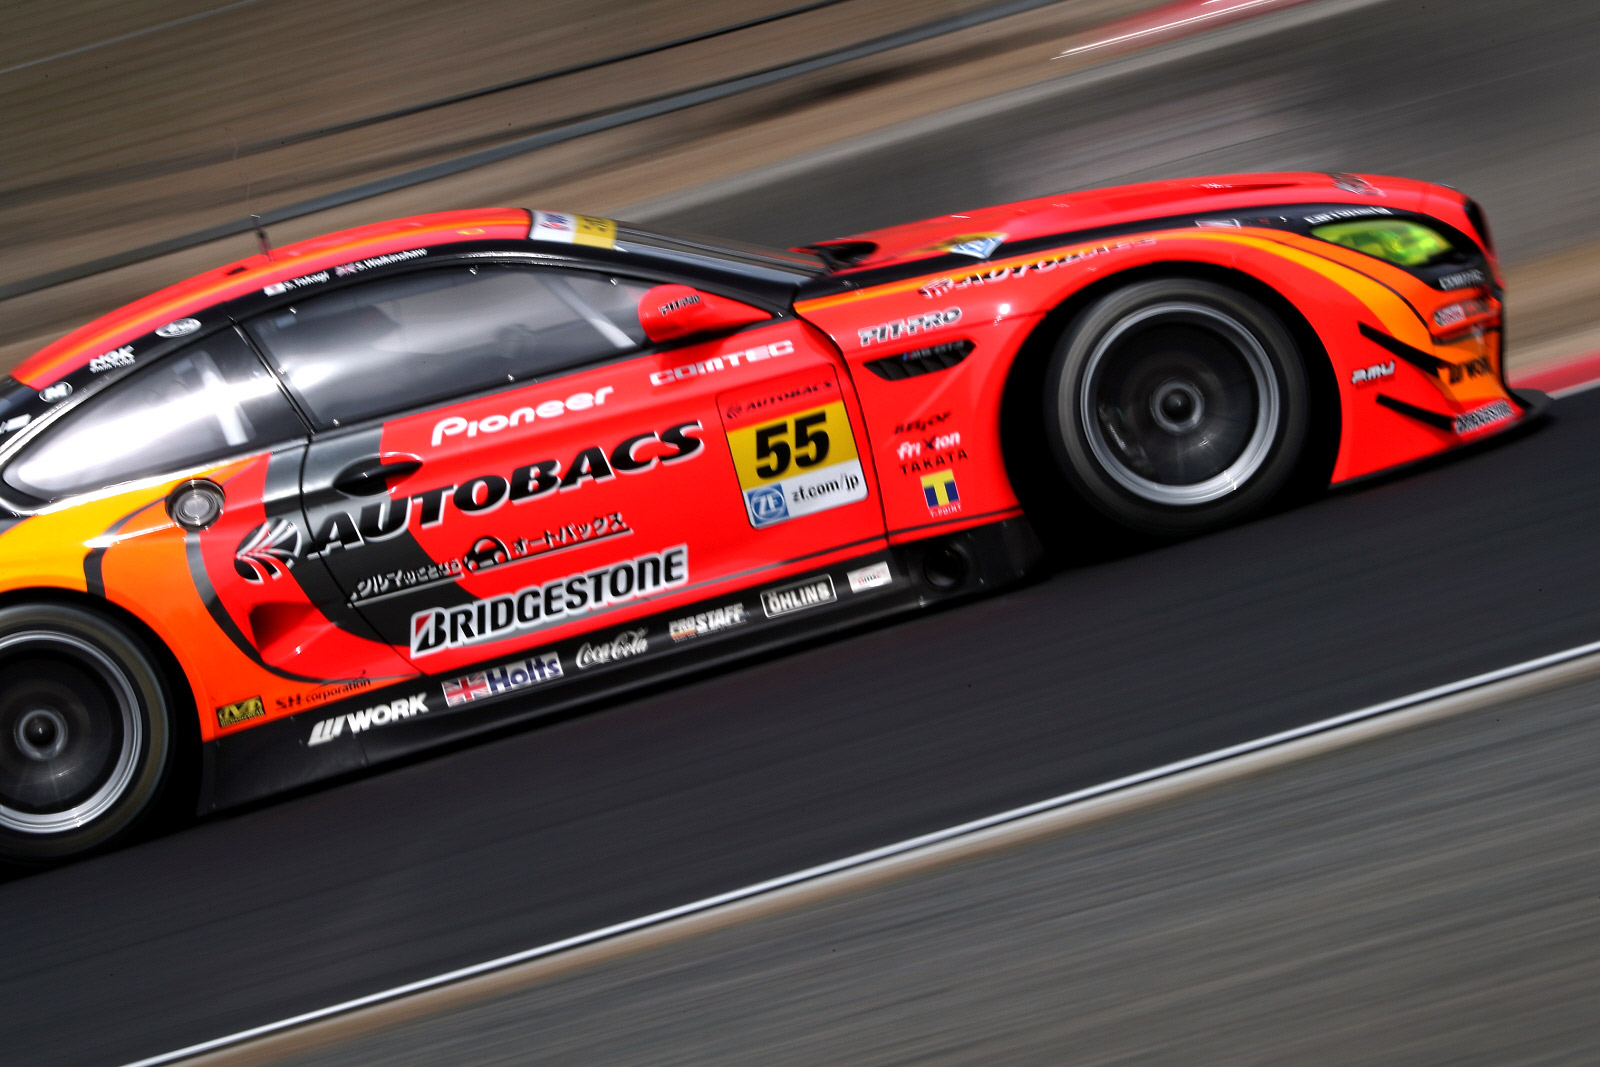 Sean Walkinshaw ready for Super GT race debut in Japan this weekend.